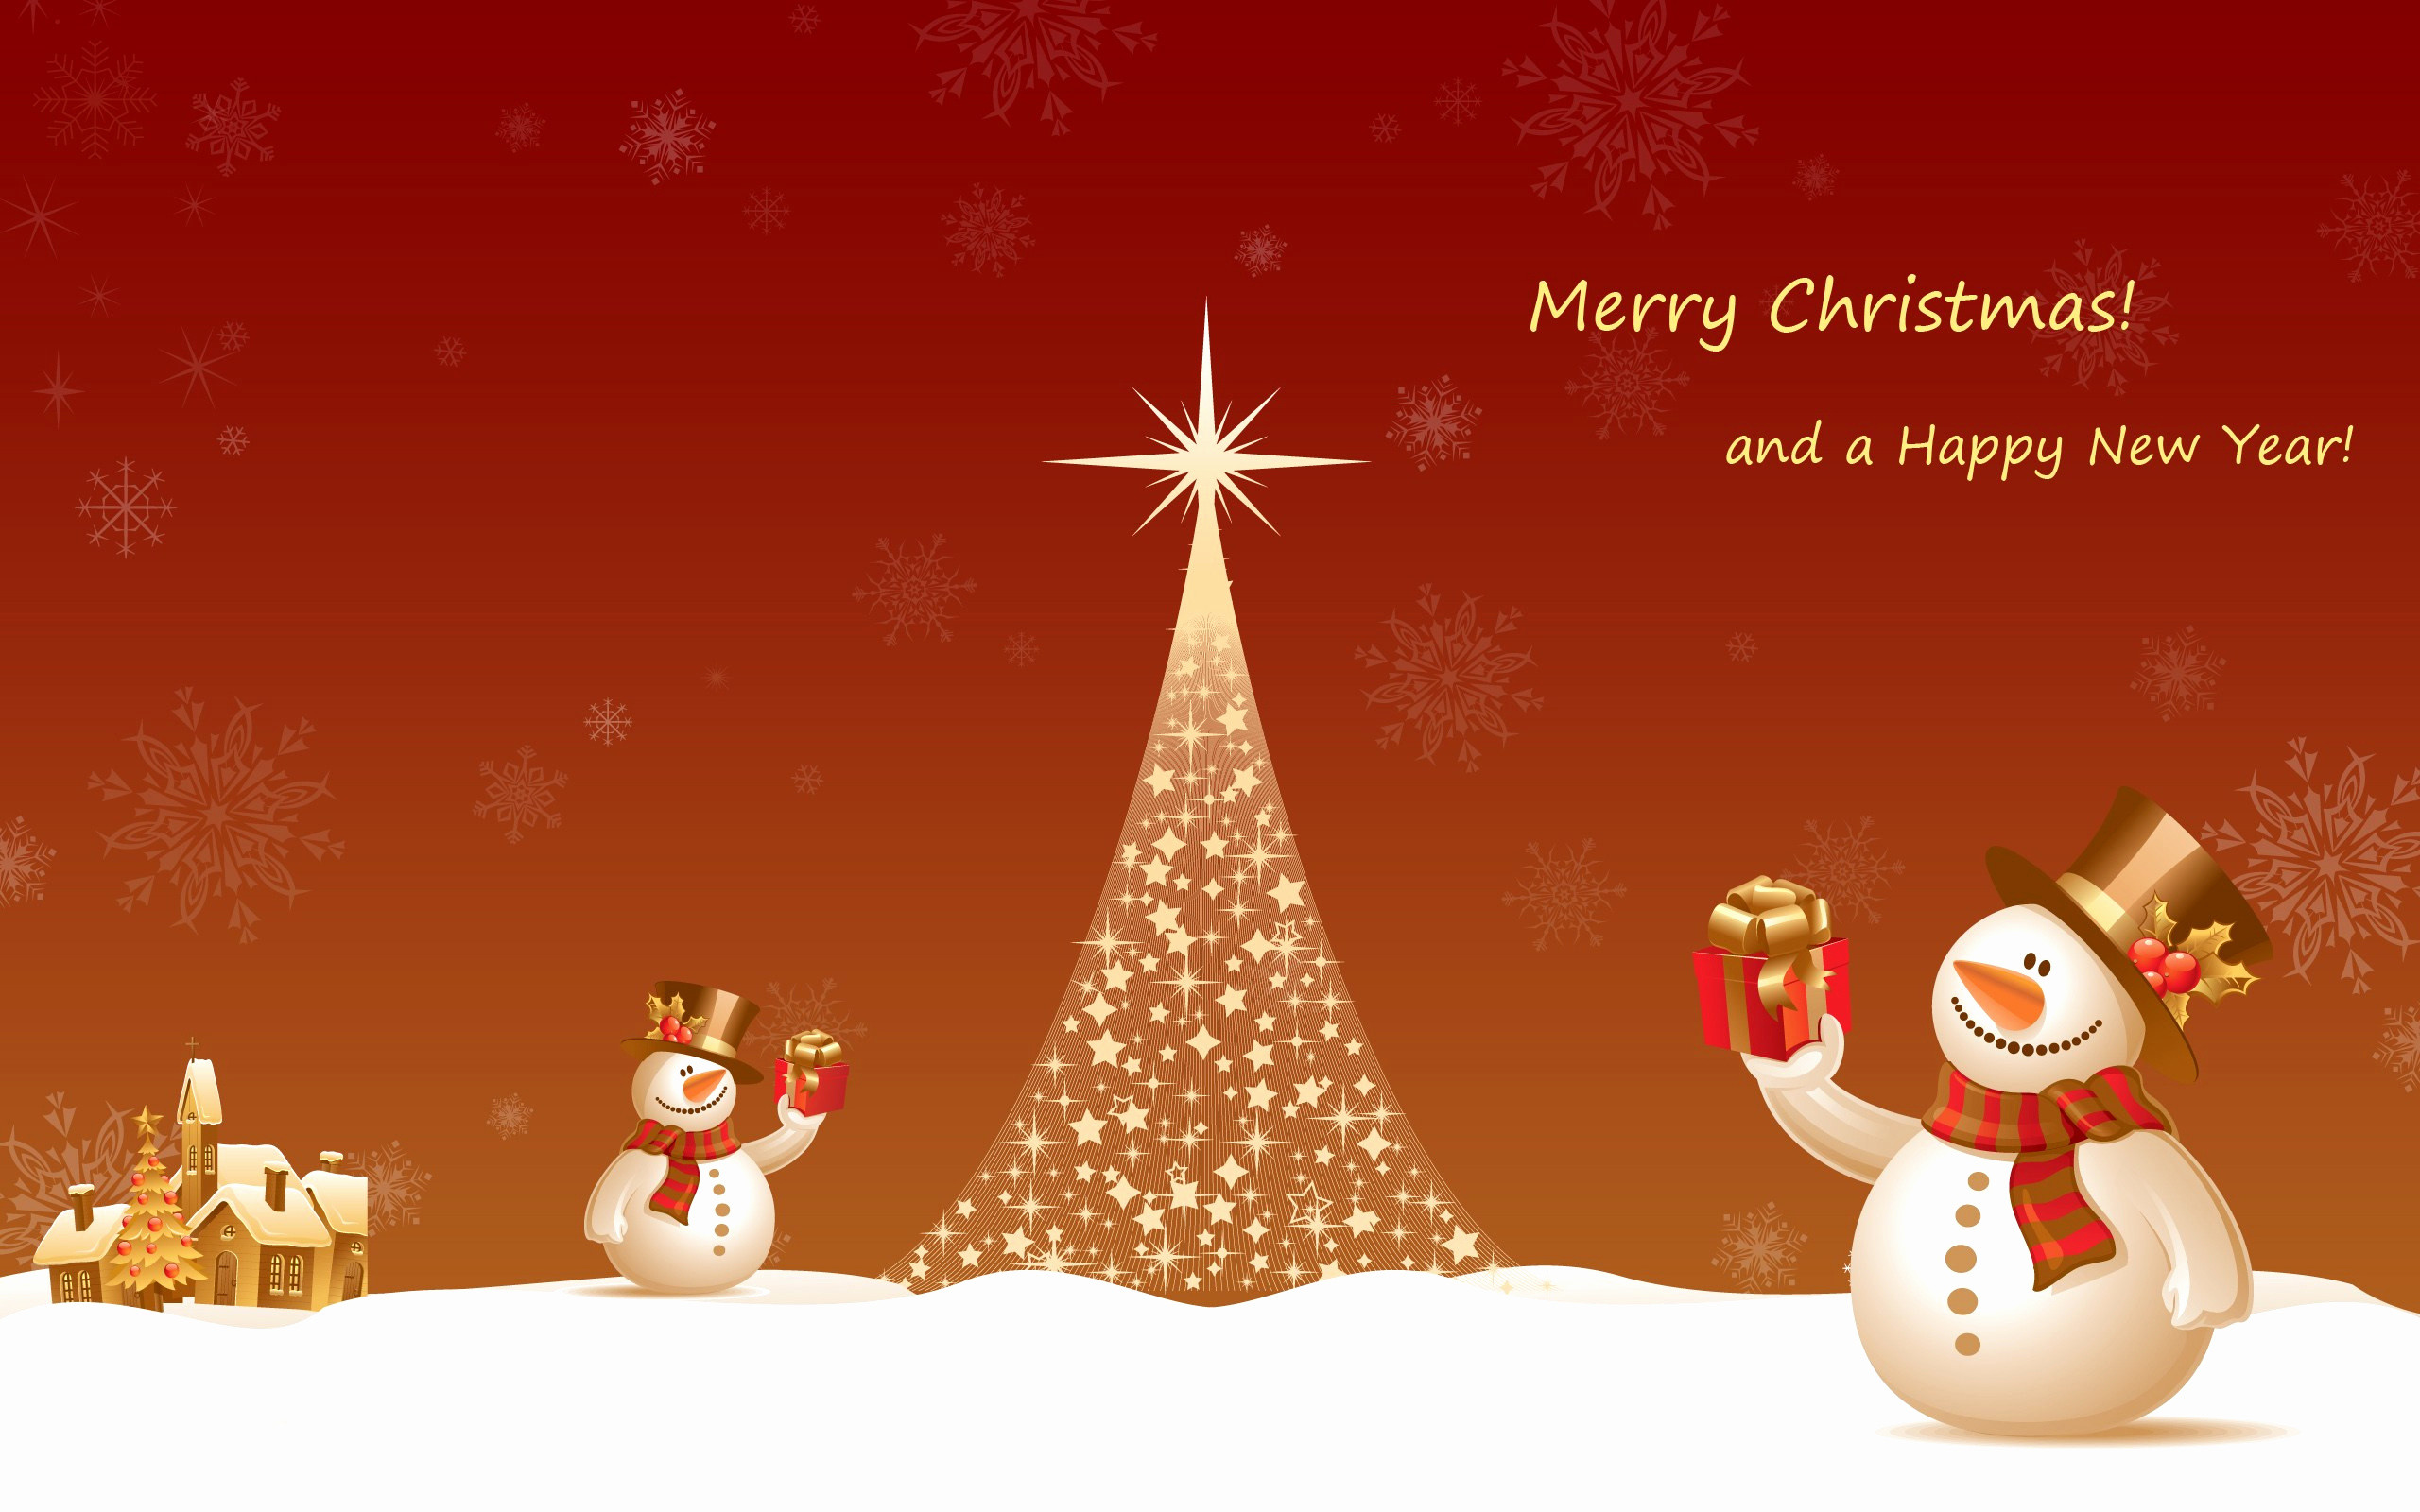 1920x1080 pc 1920x1080 px christmas snowman desktop wallpaper mf wallpapers